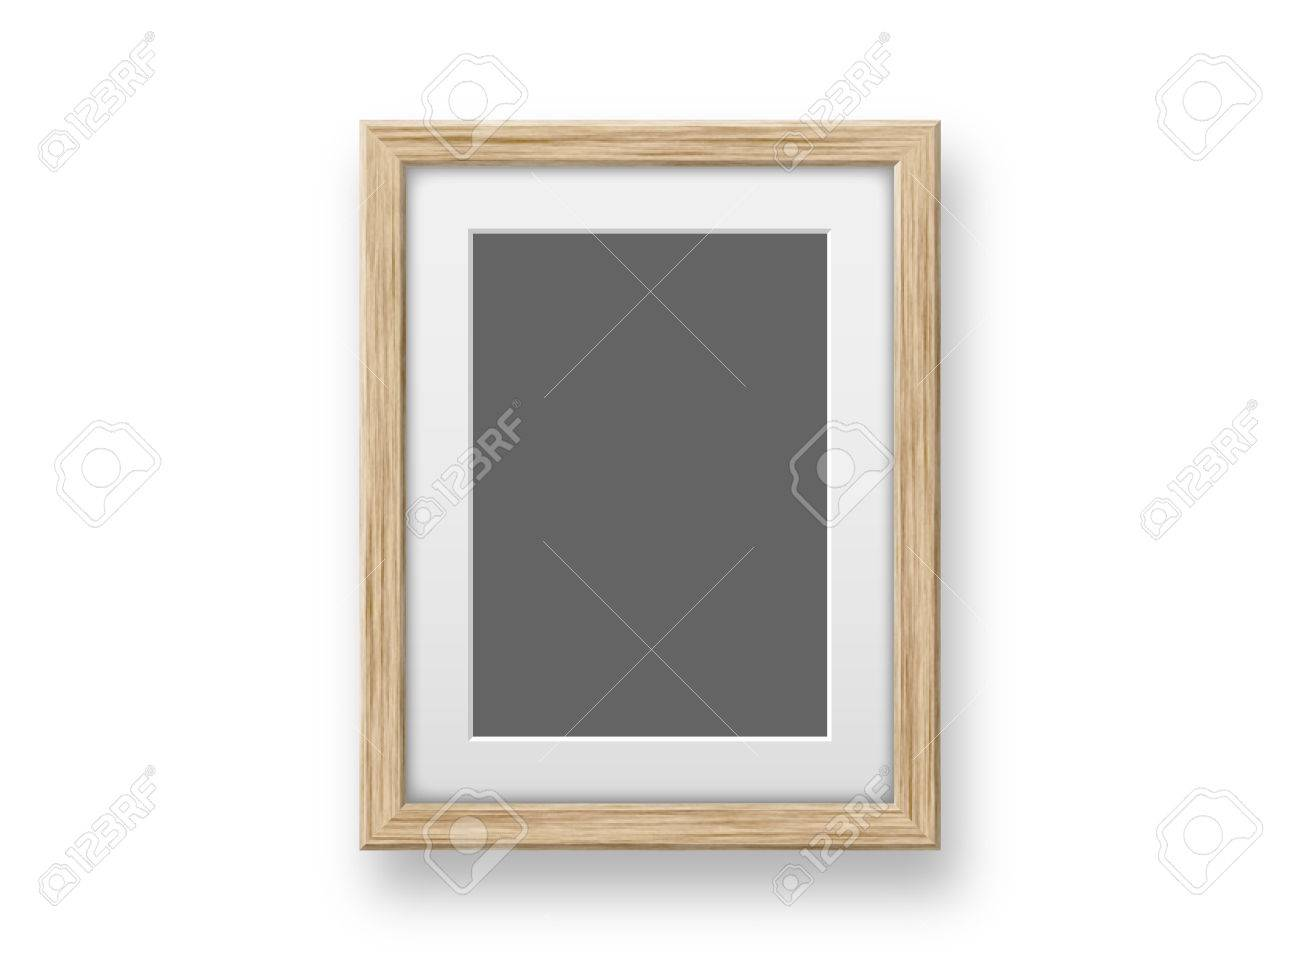 Blank Wooden Frames Template On The Wall Stock Photo, Picture And ...